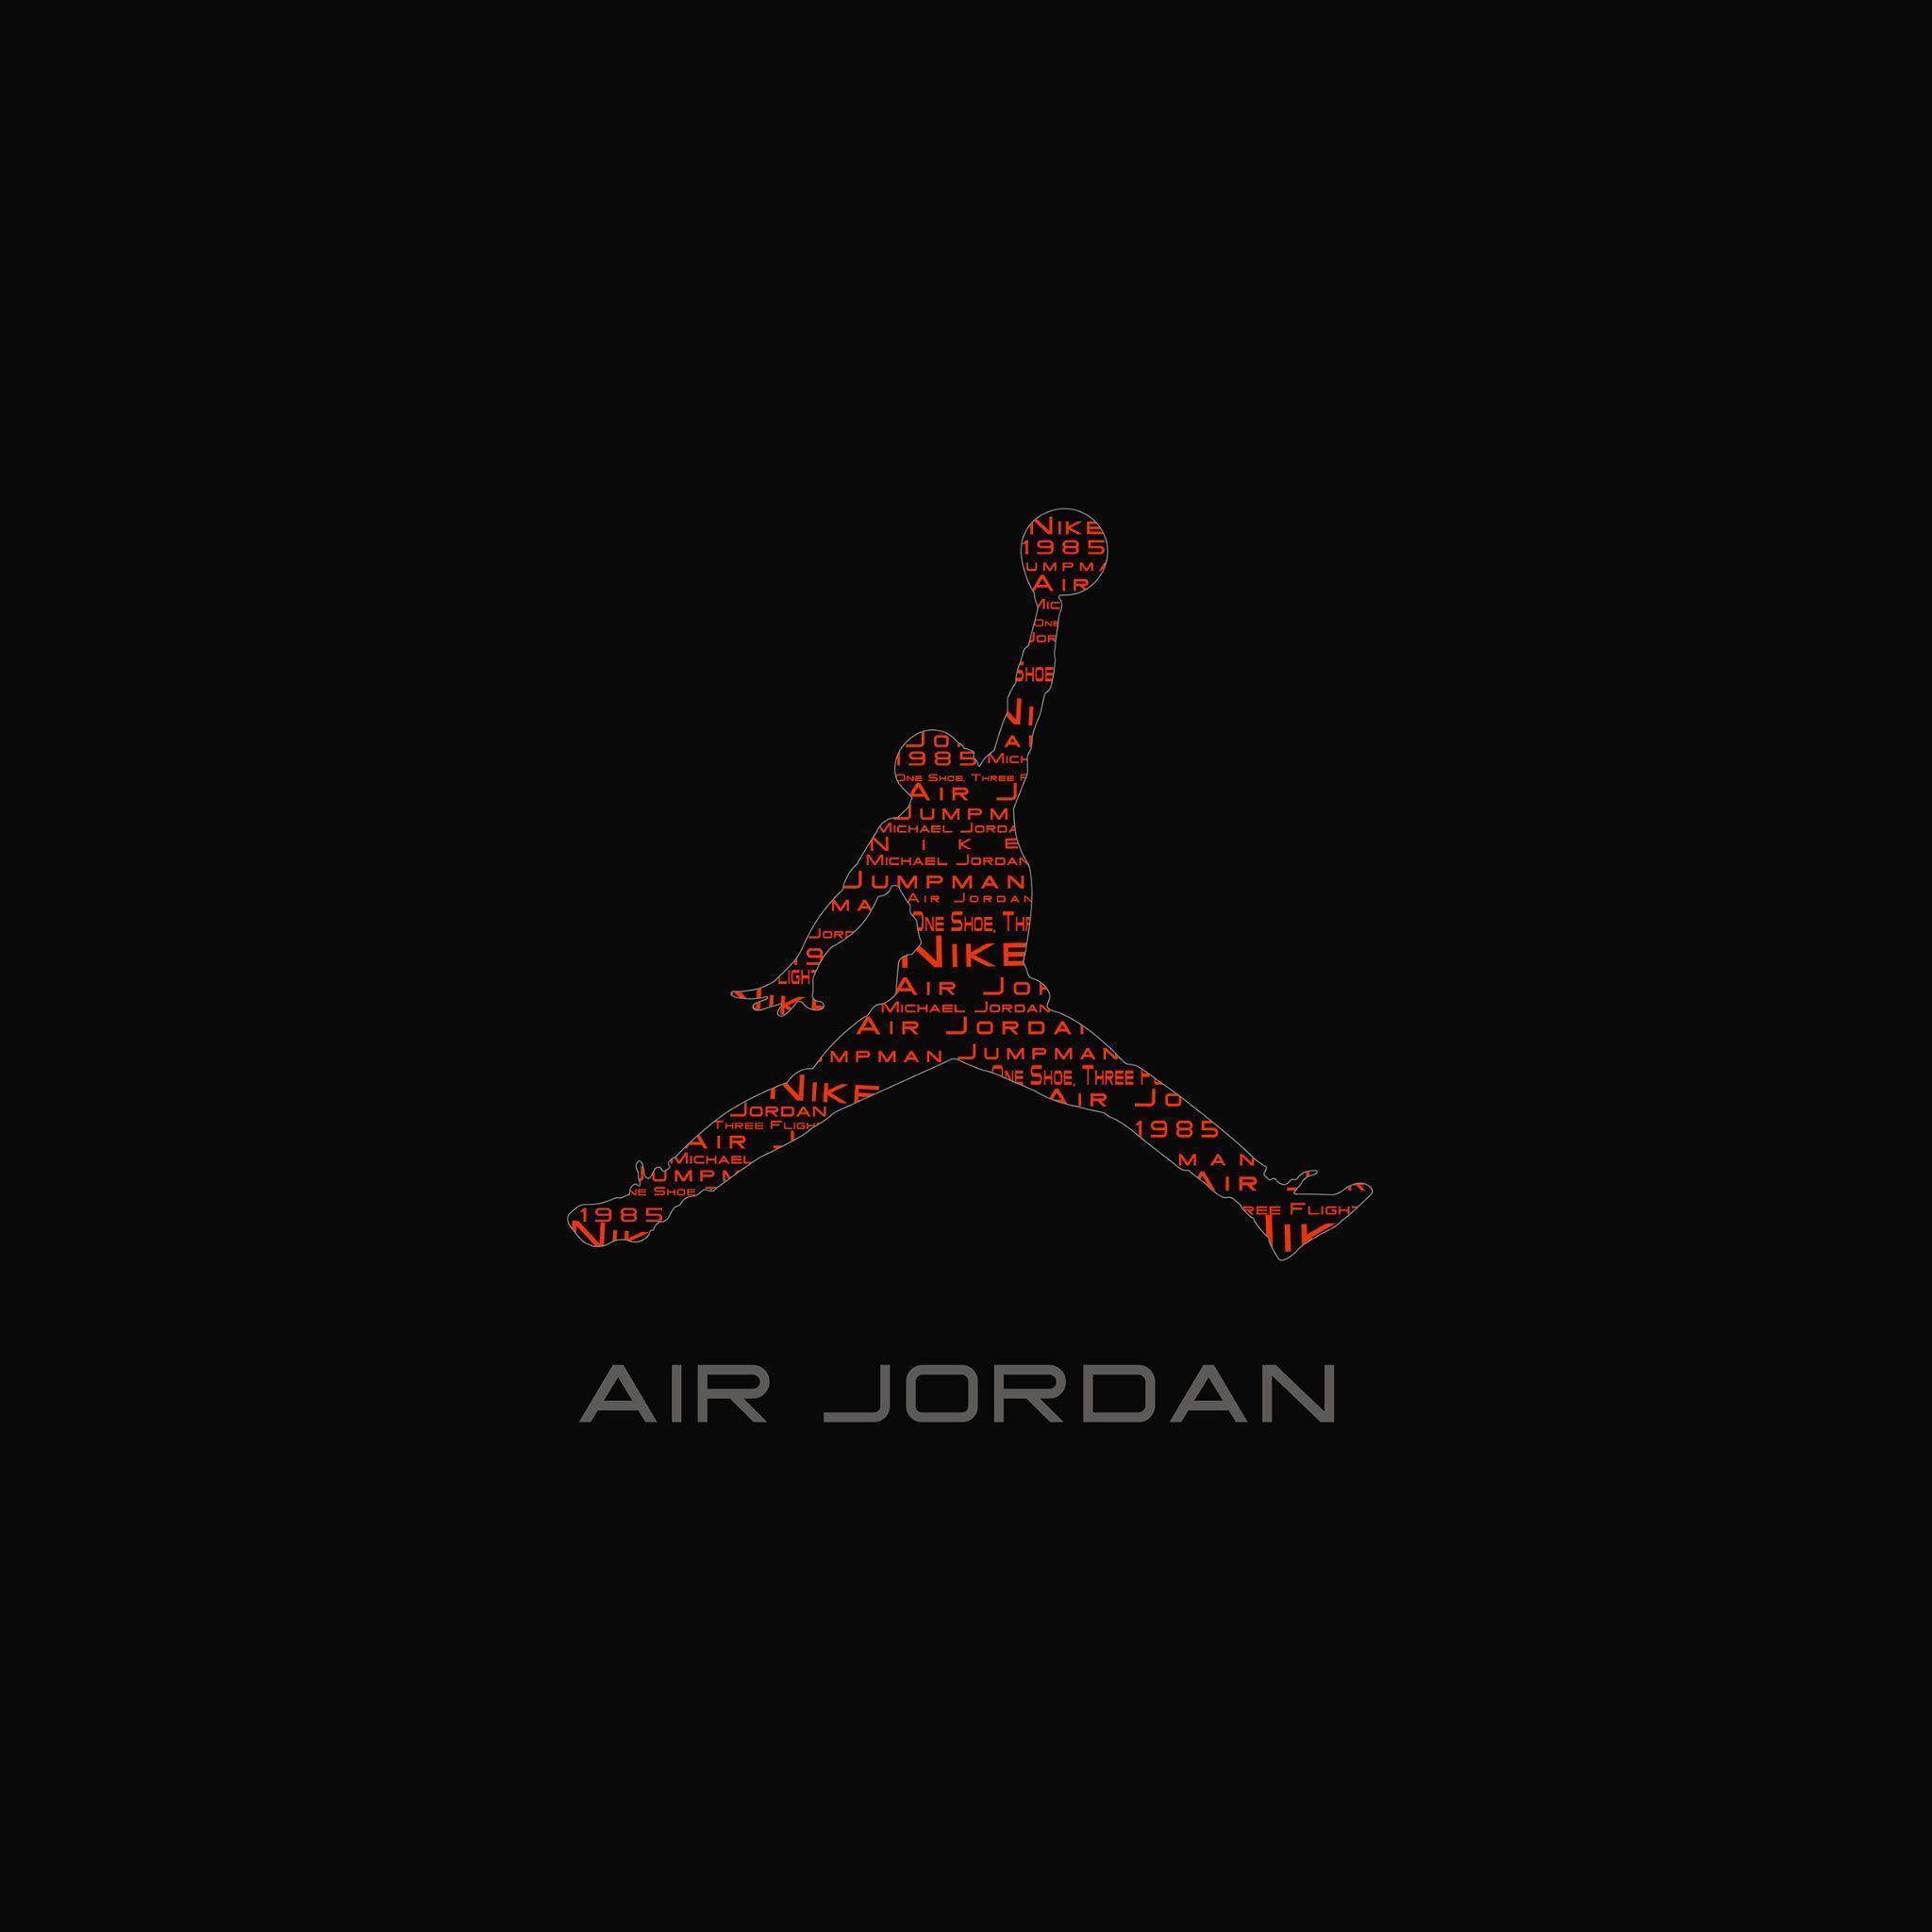 Air Jordan iPhone Wallpaper - WallpaperSafari